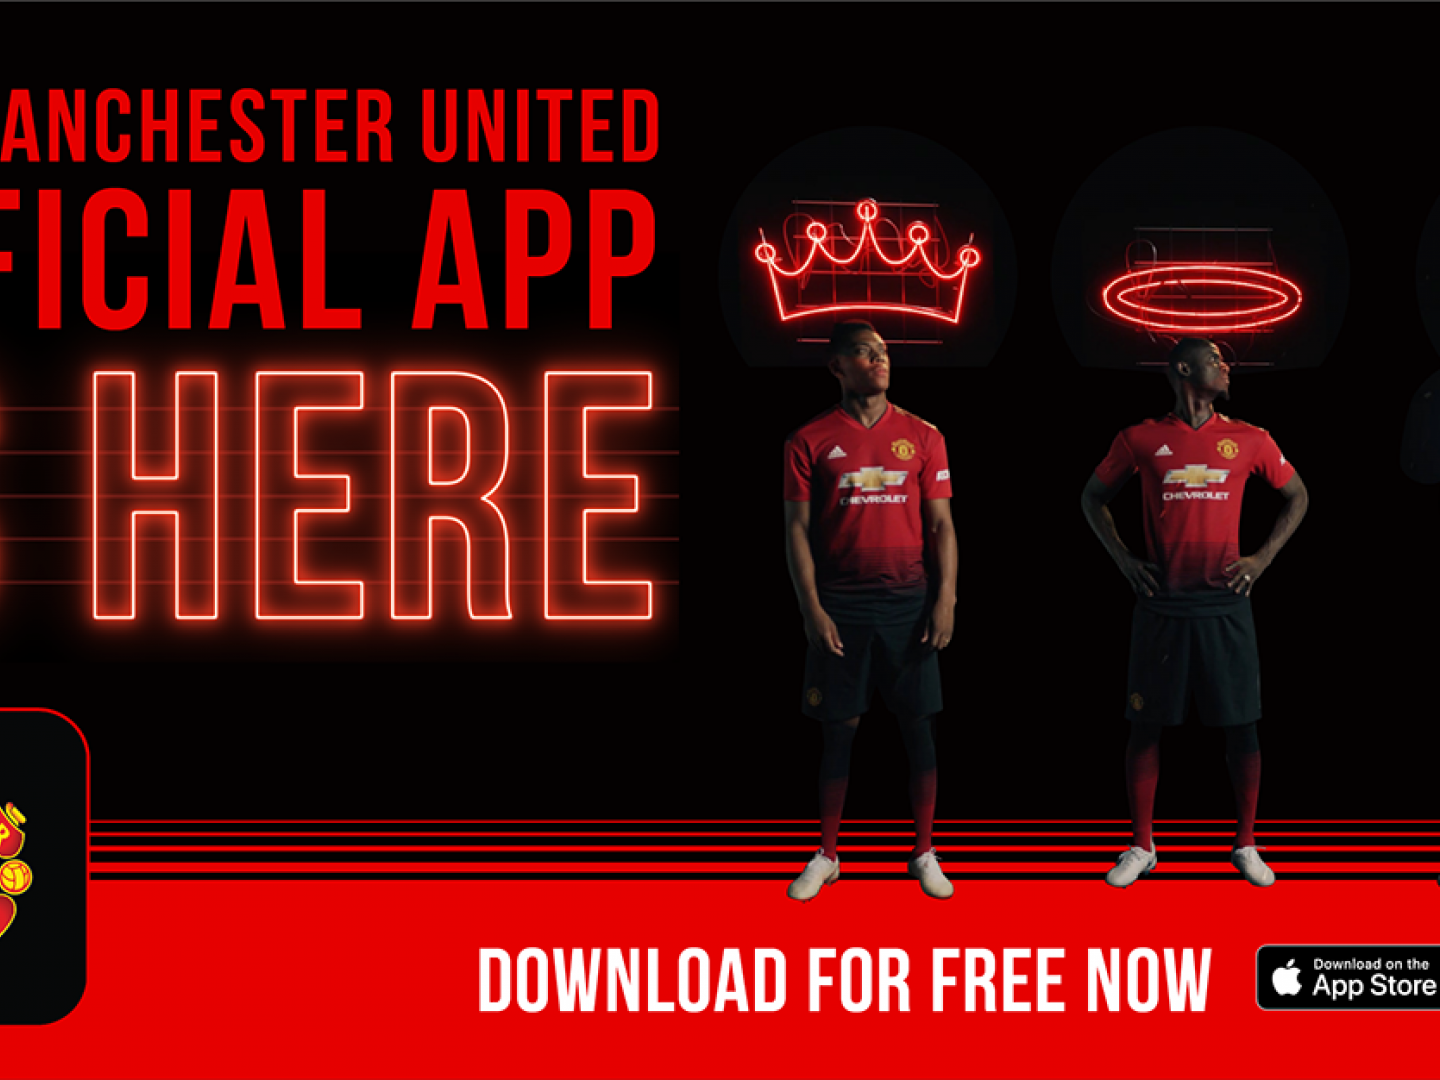 #UnitedByHCL - a unified fan experience for Manchester United's 659 million followers Thumbnail